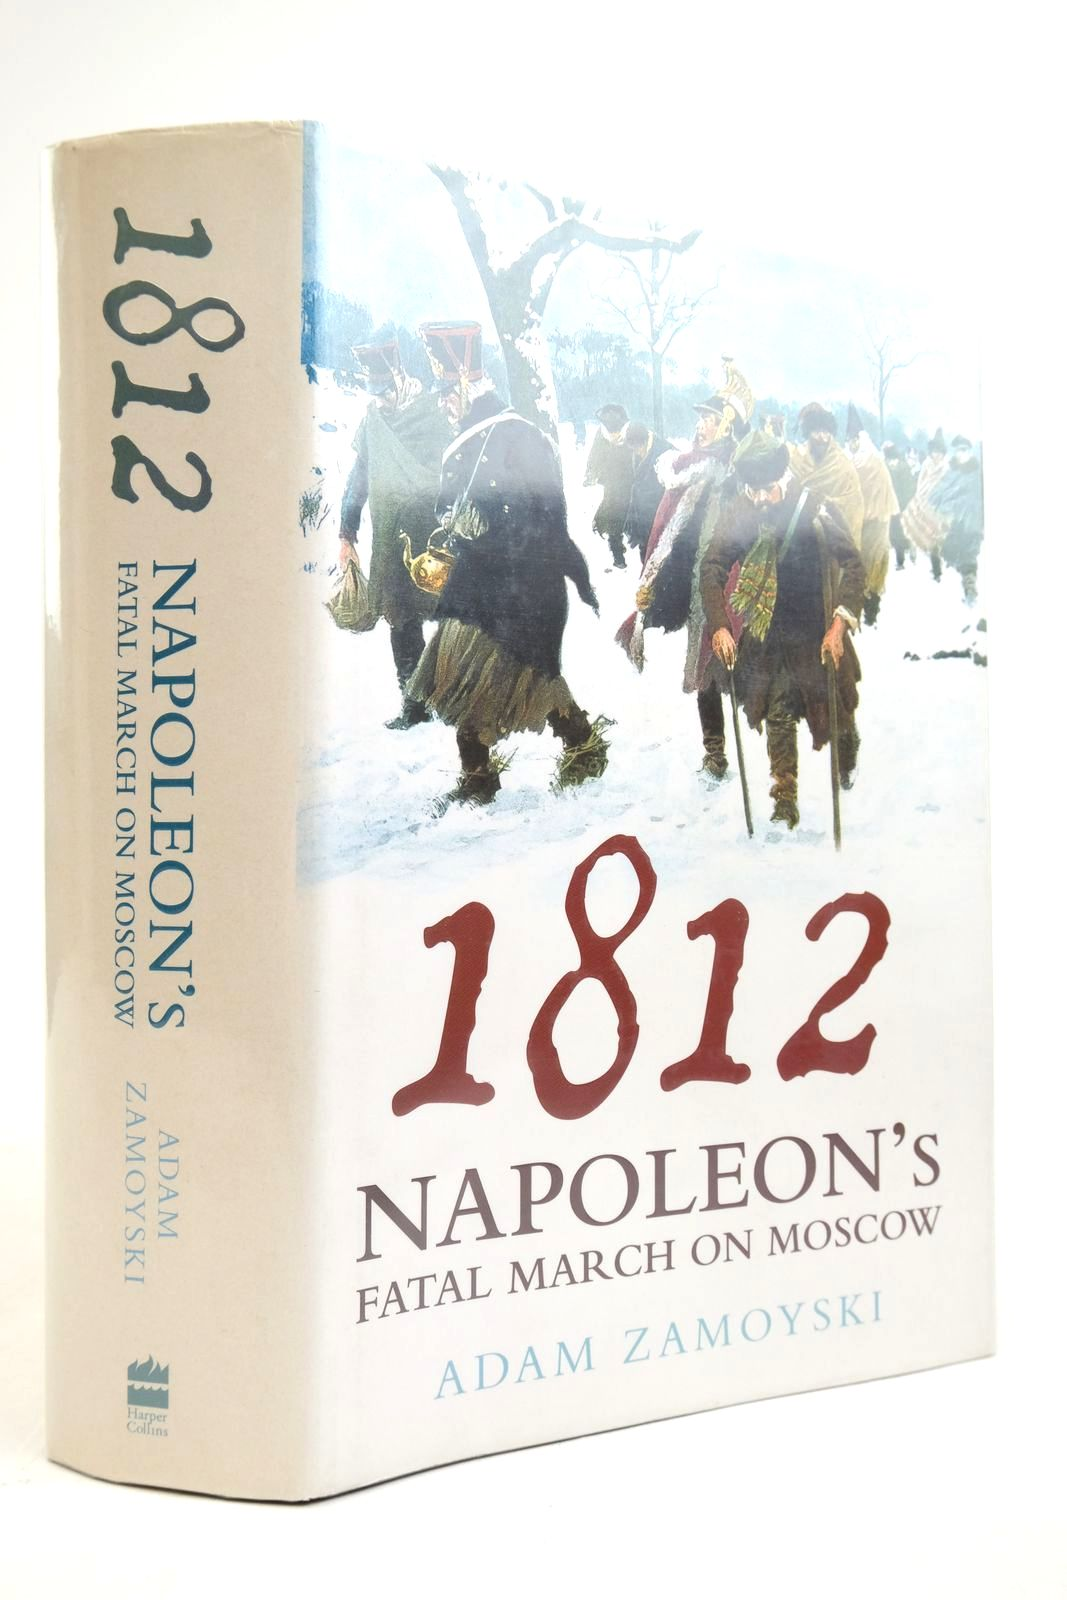 Photo of 1812 NAPOLEON'S FATAL MARCH ON MOSCOW- Stock Number: 2135396